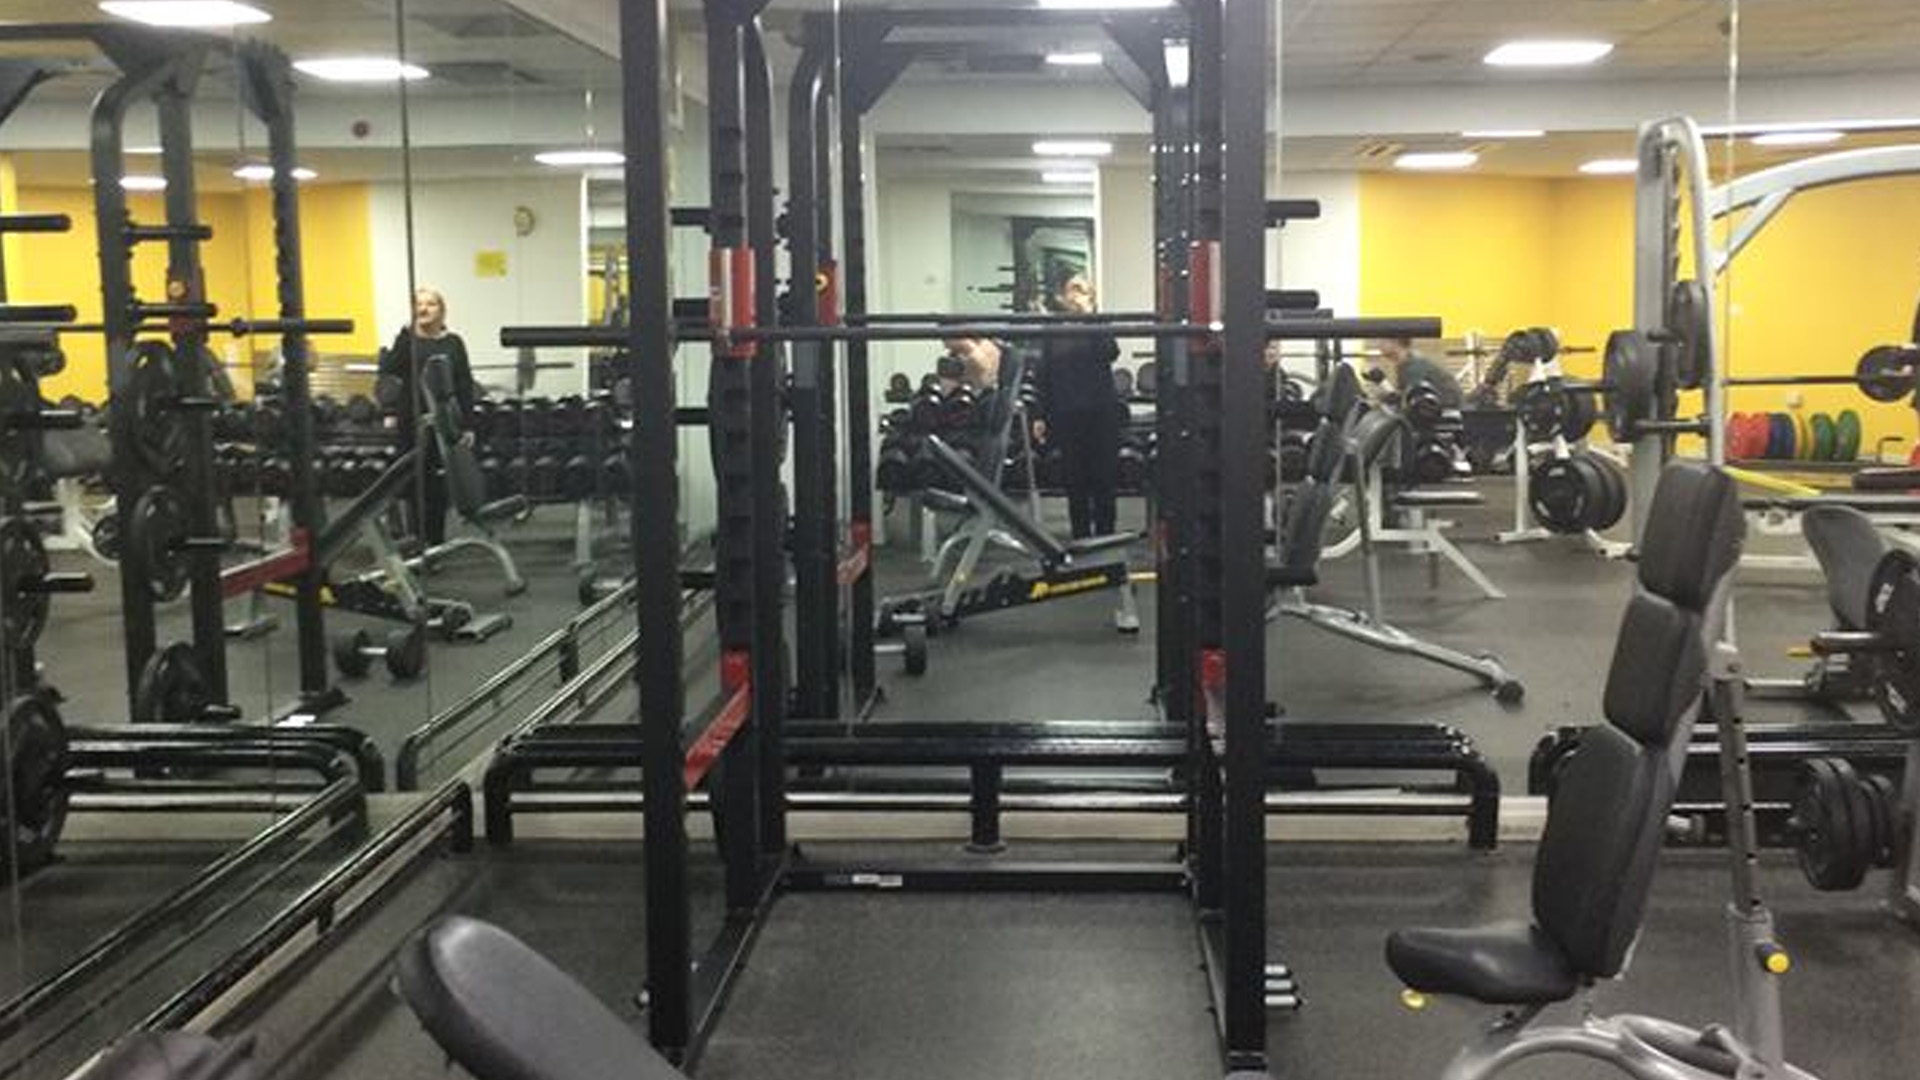 Simply Gym Crewe - Weights Section